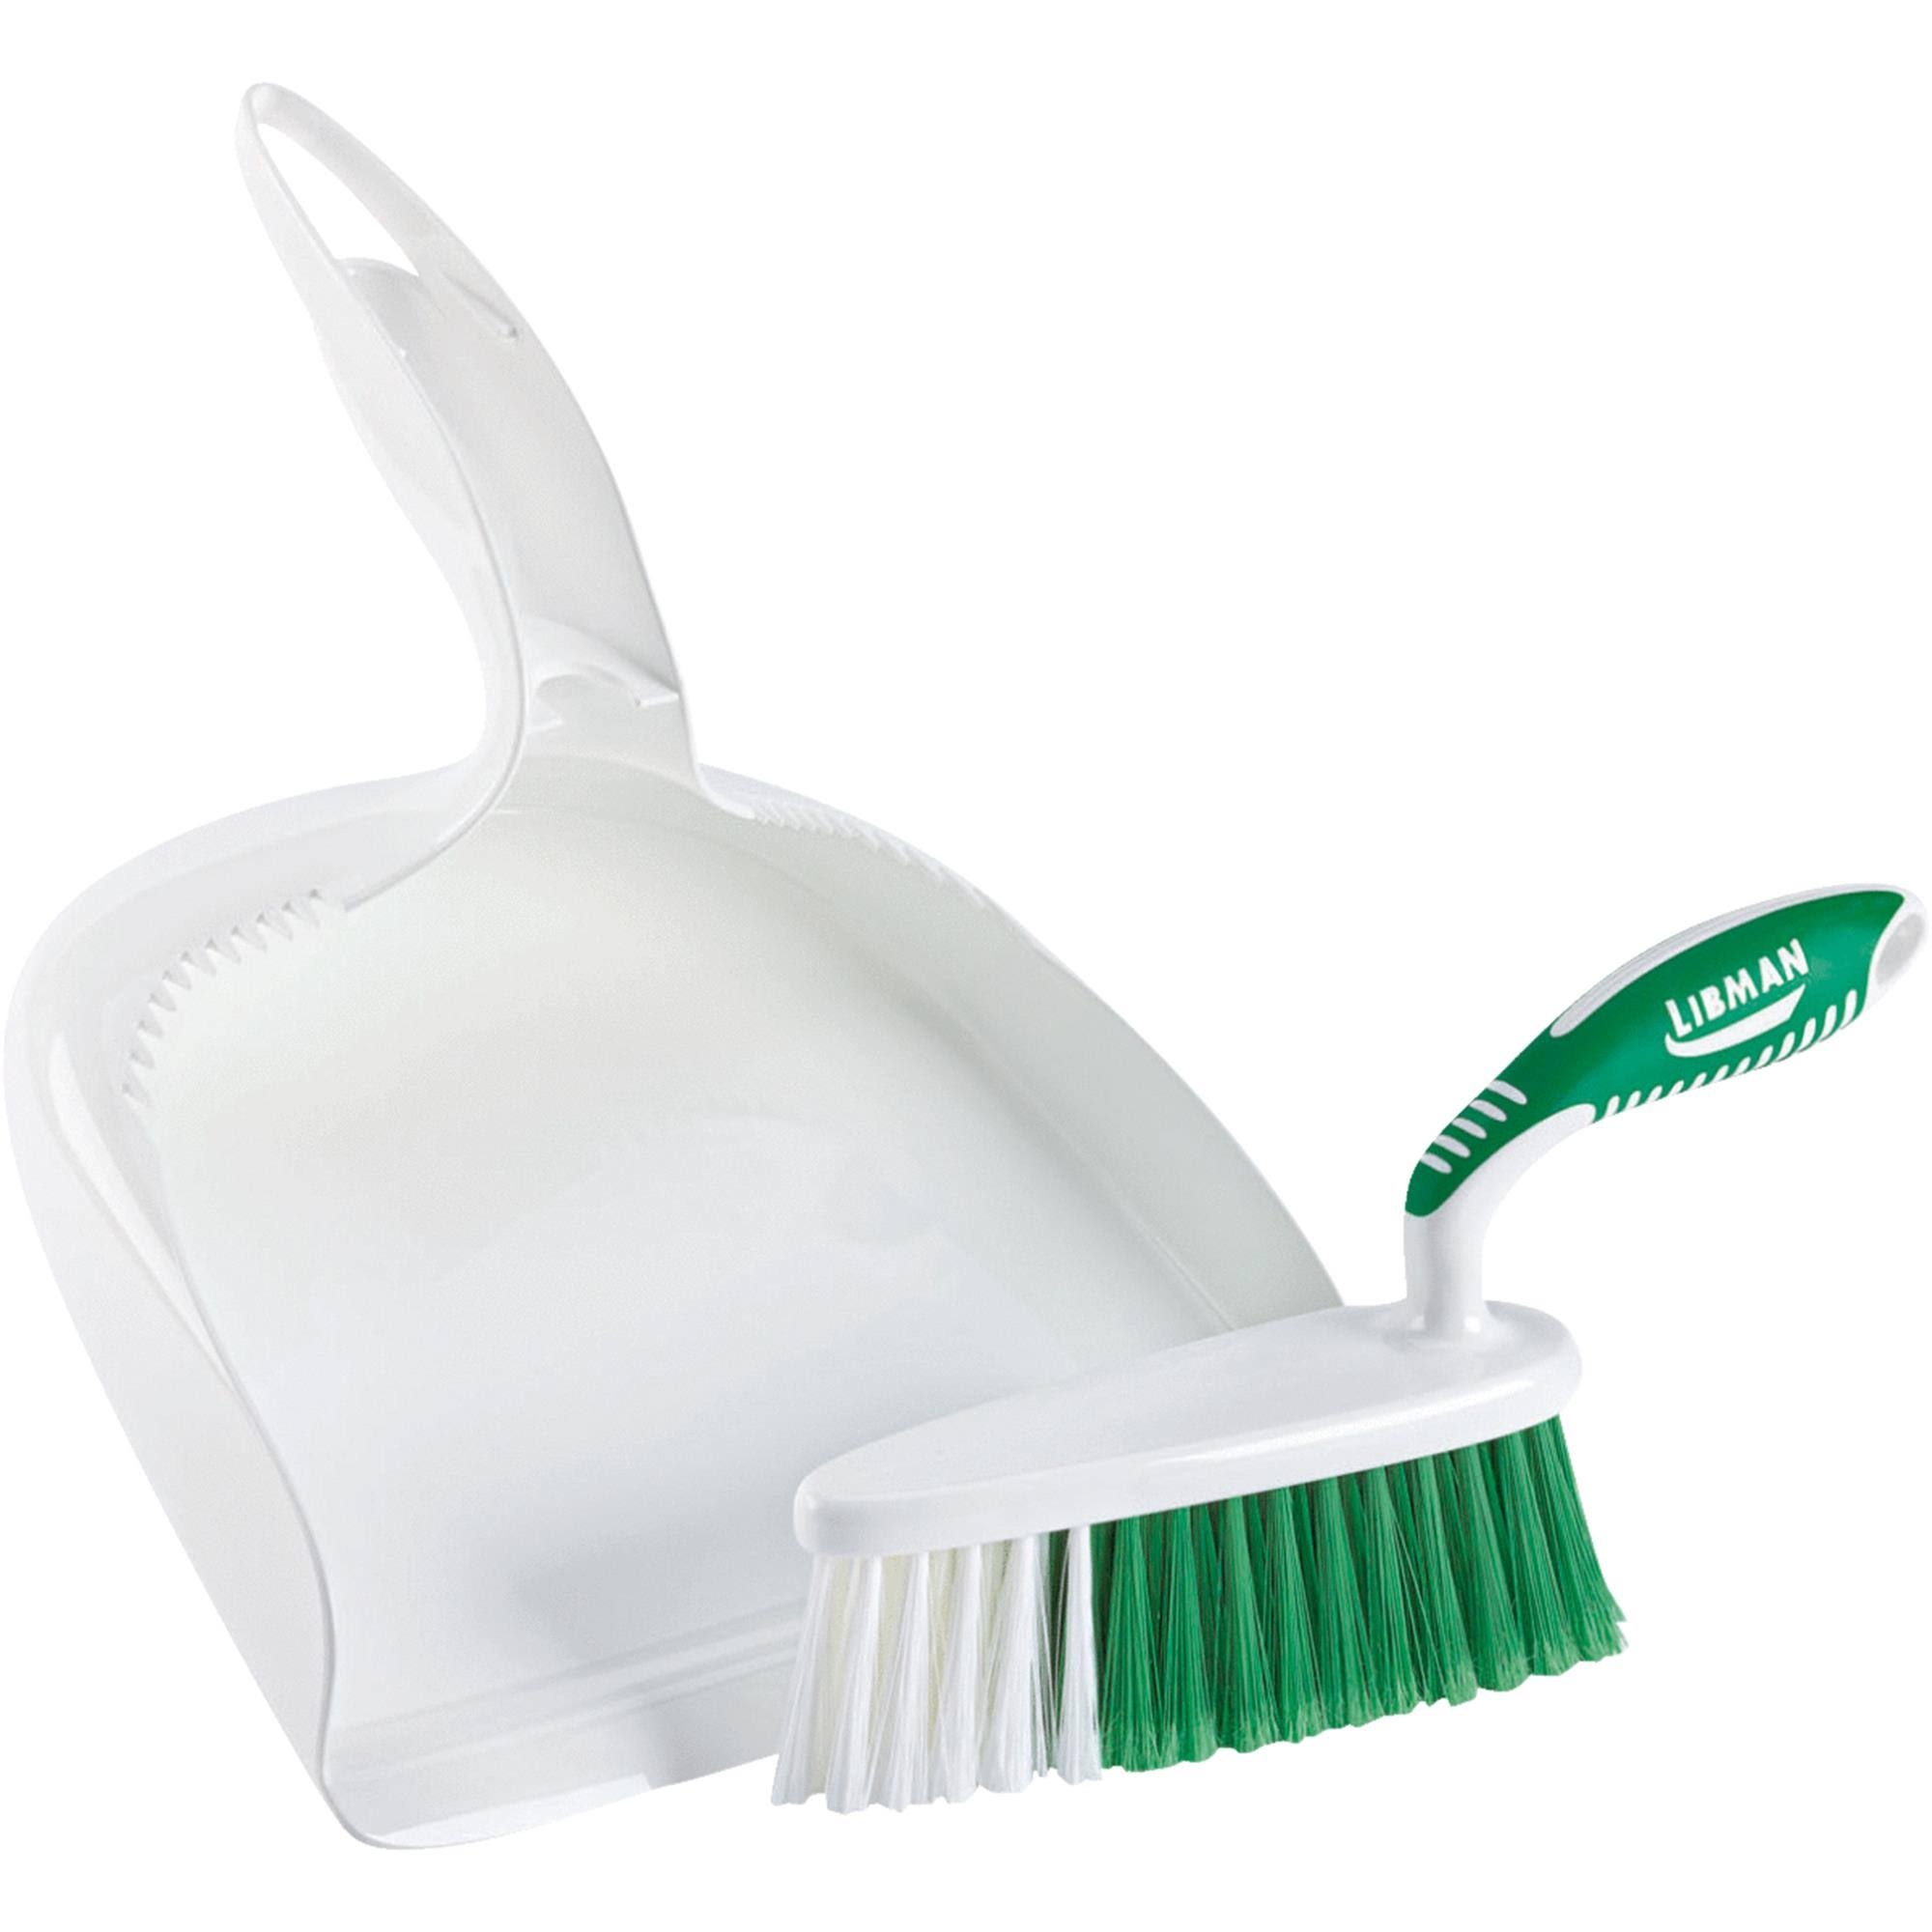 Libman Dust Pan and Brush Set